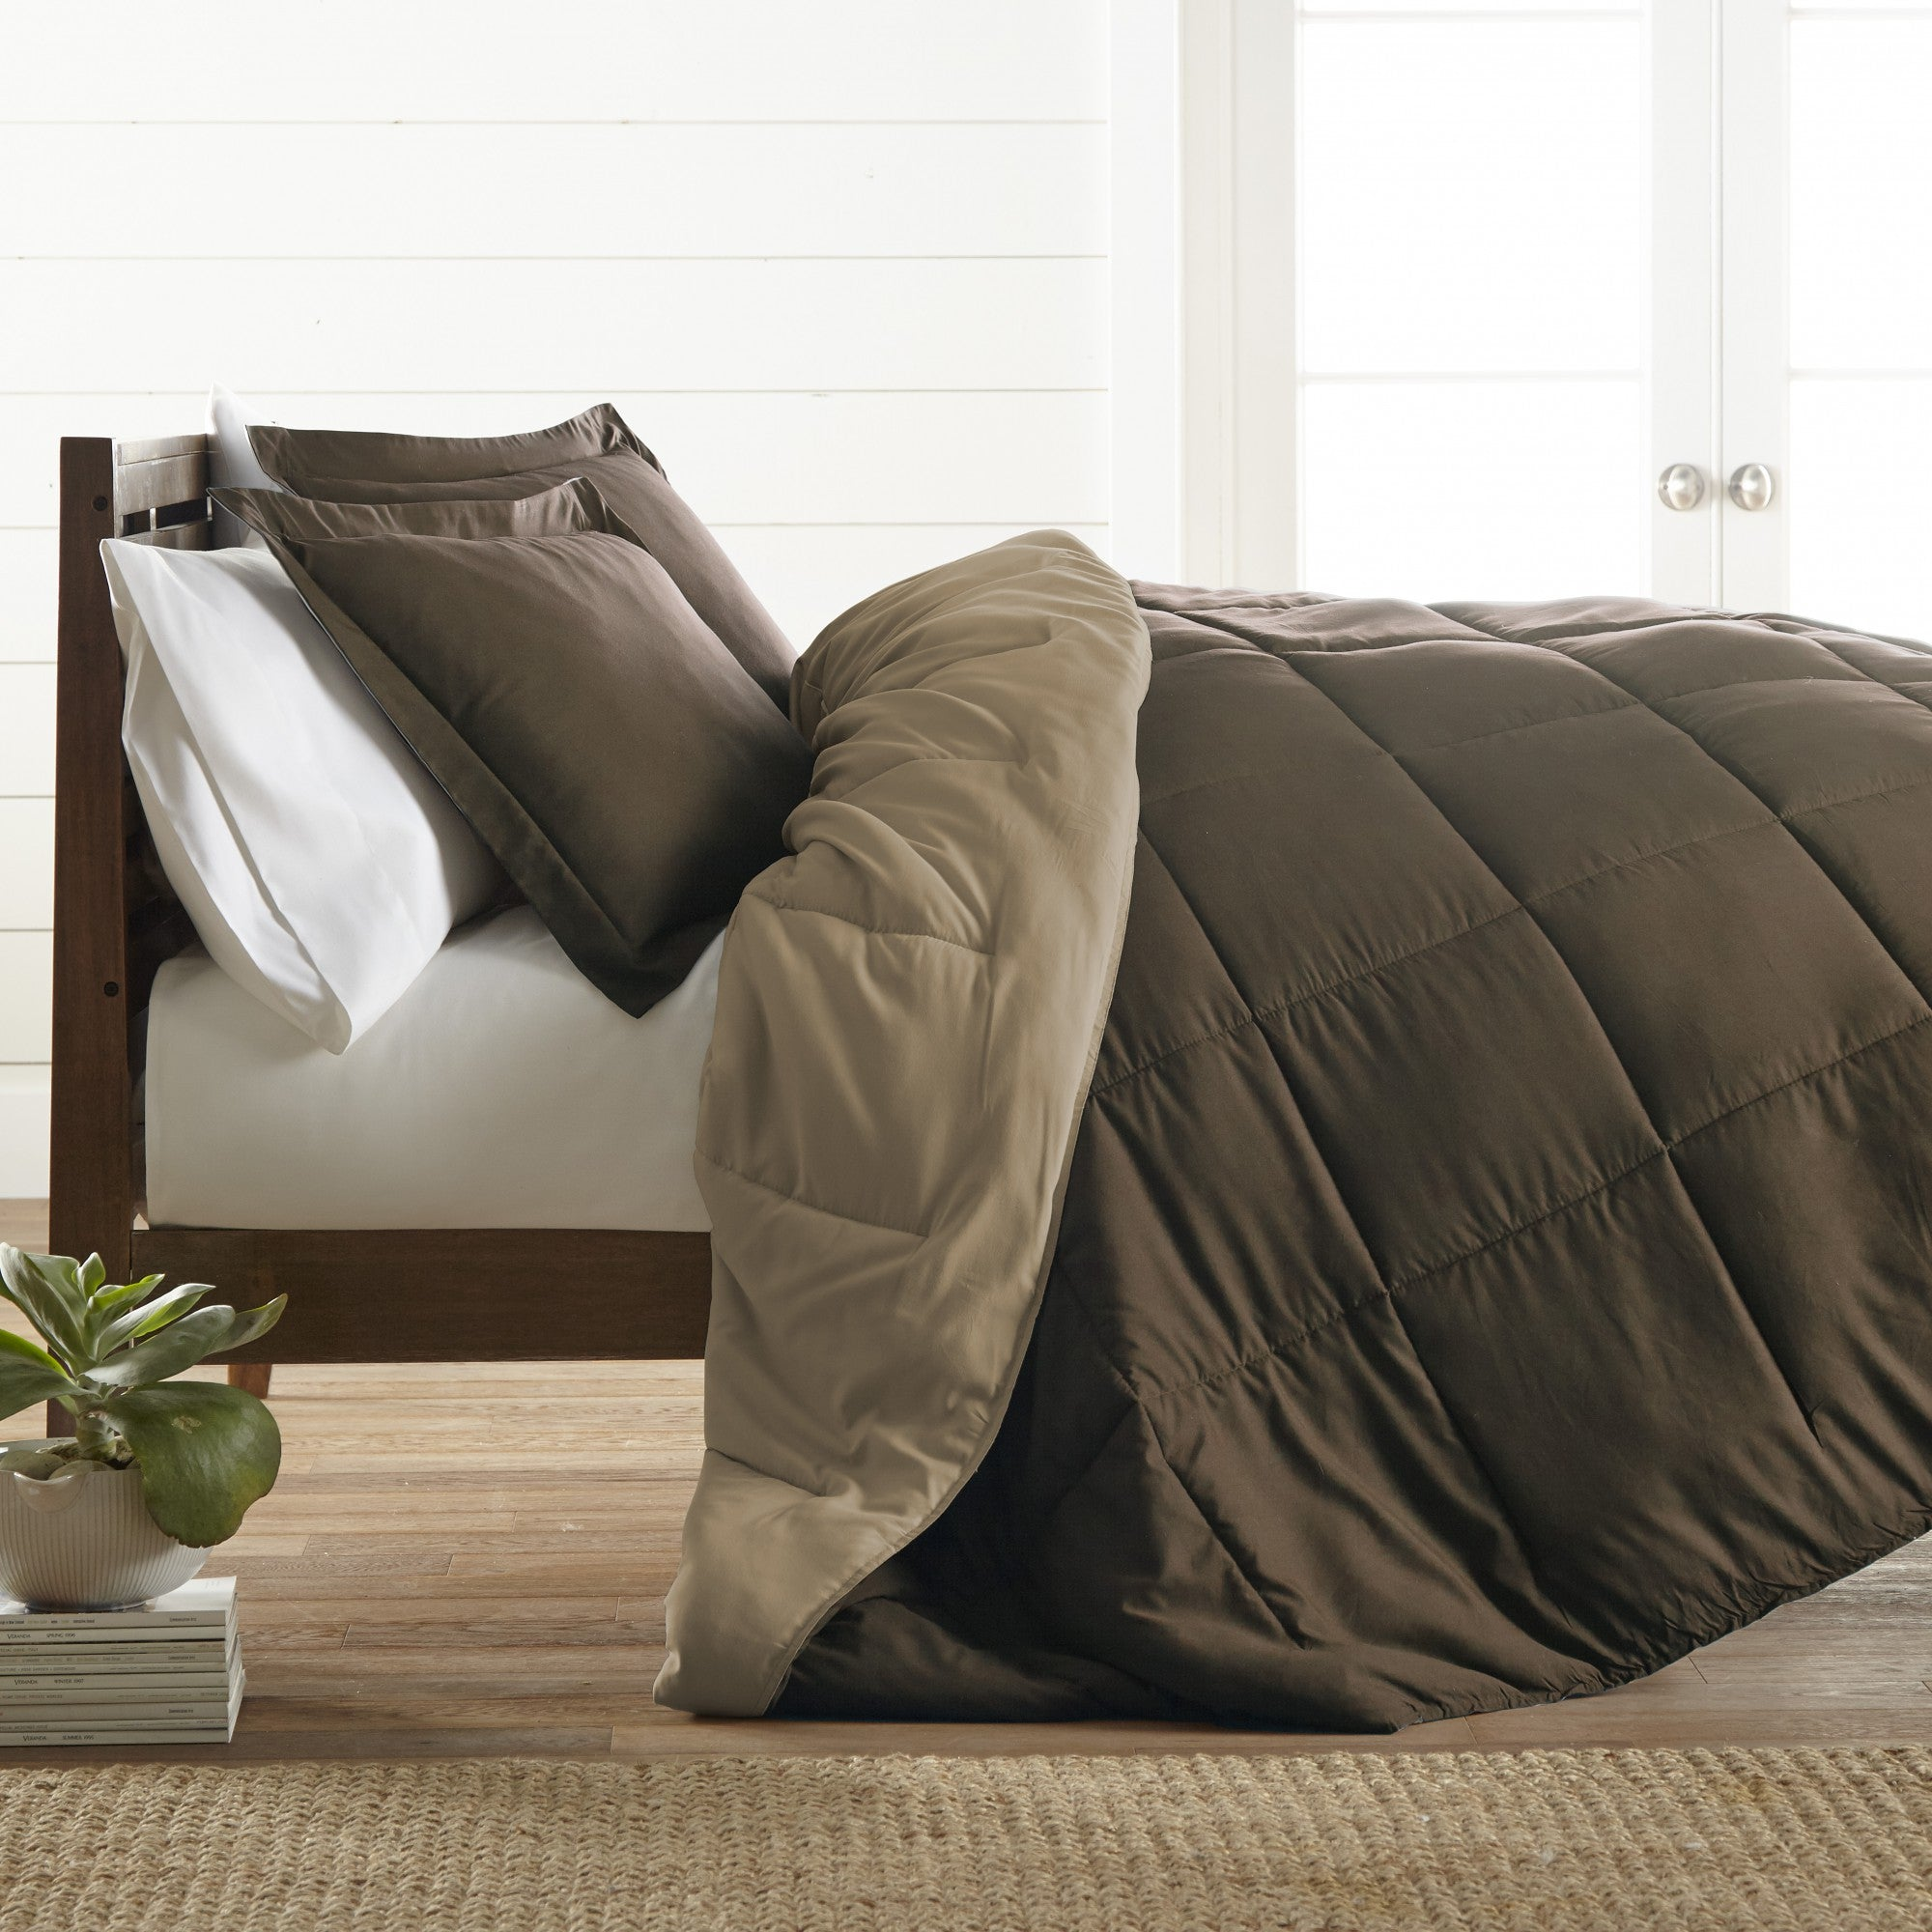 Reversible Alternative Down Comforter Chocolate Taupe Linens Wholesale